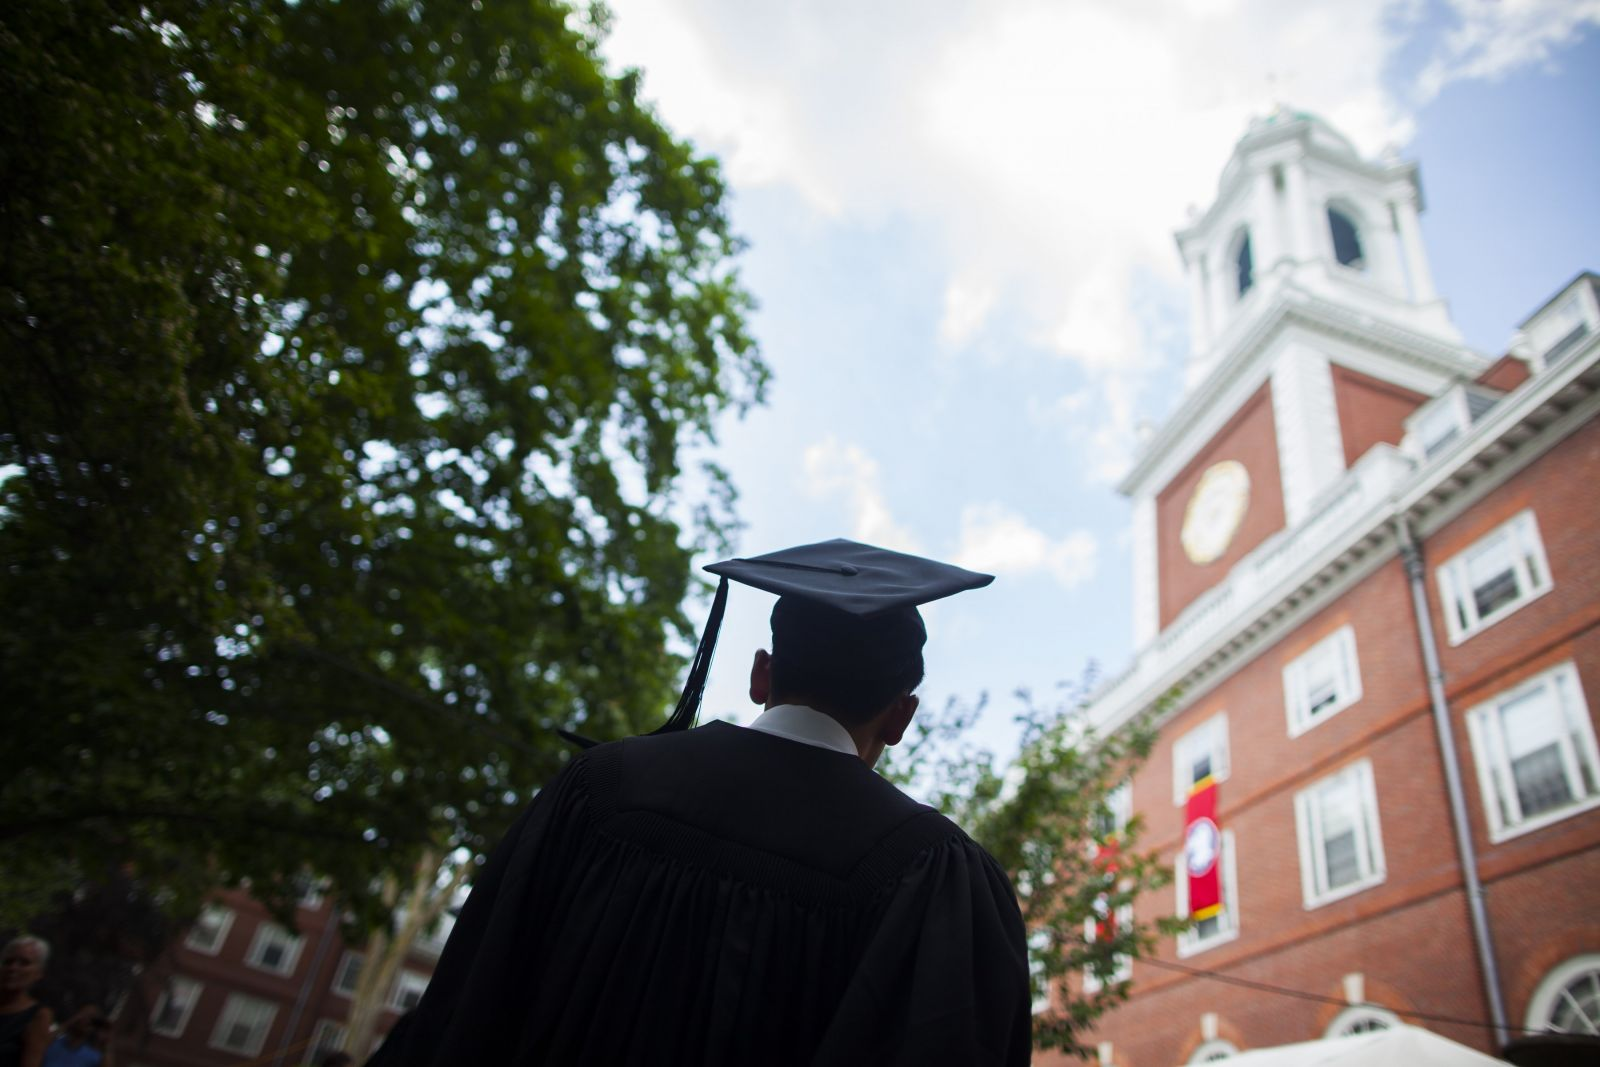 How to get into Harvard - or any other elite university